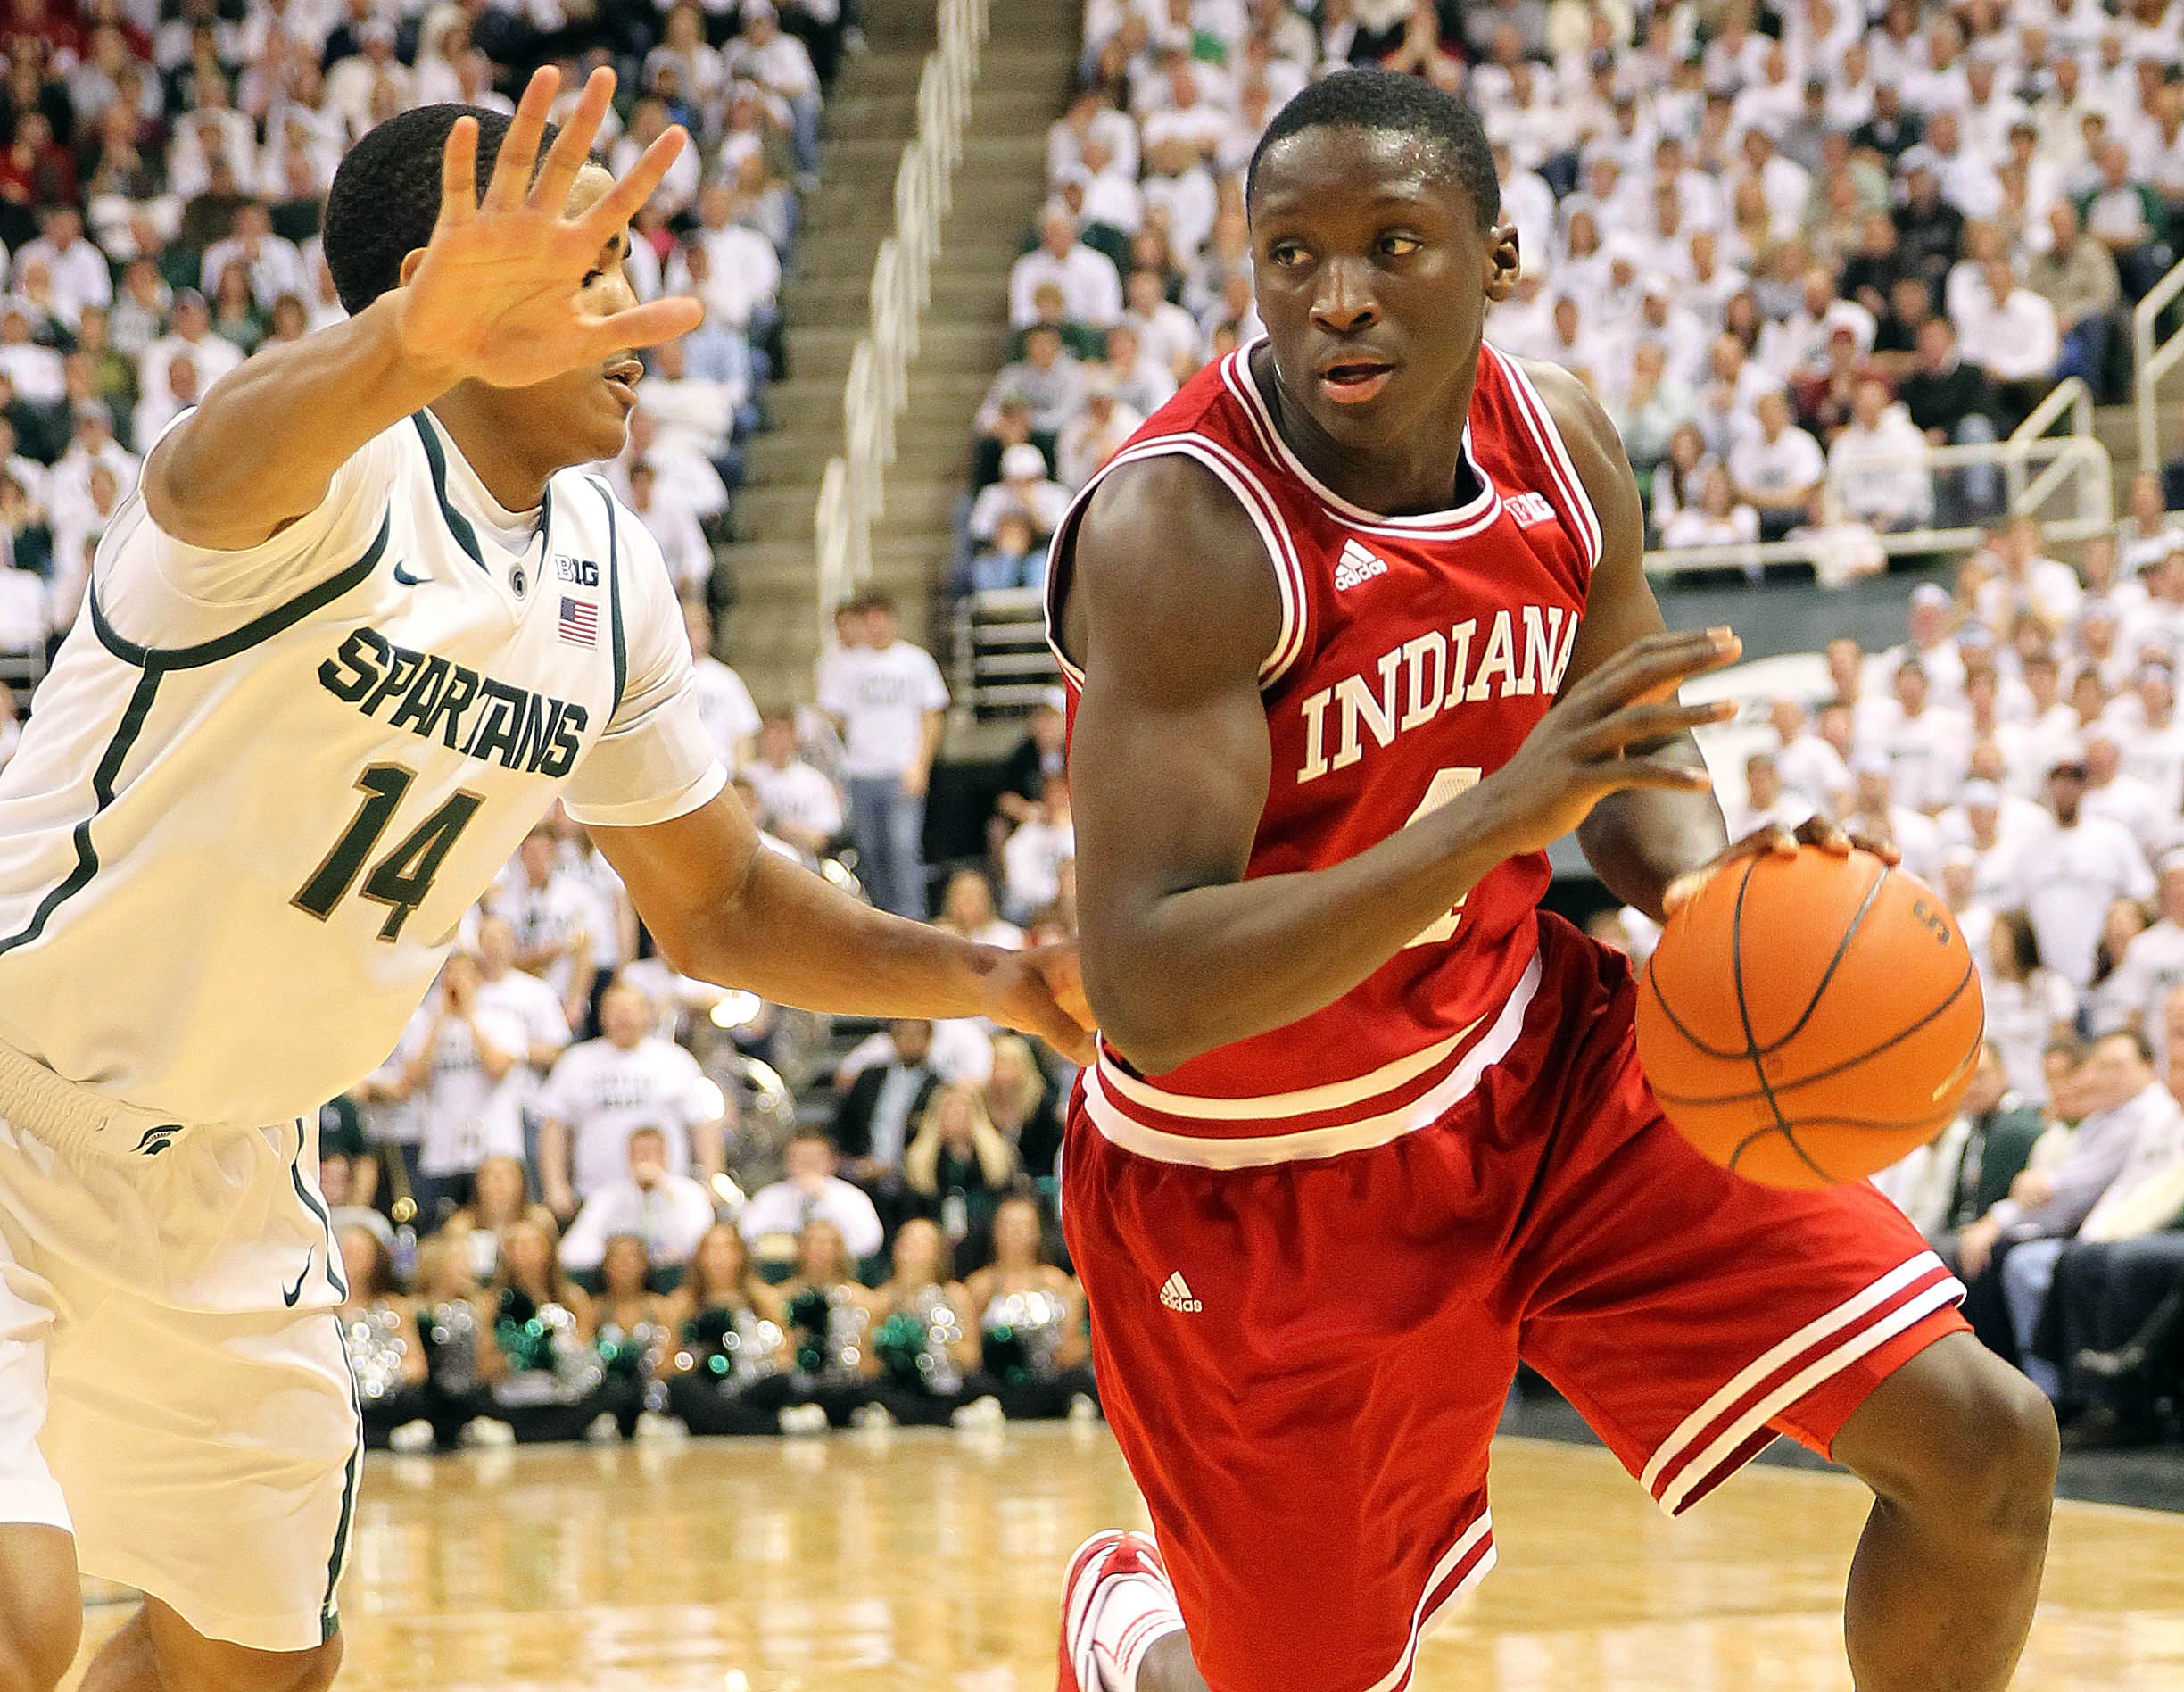 Indiana's Victor Oladipo. (Credit: USA Today Sports)